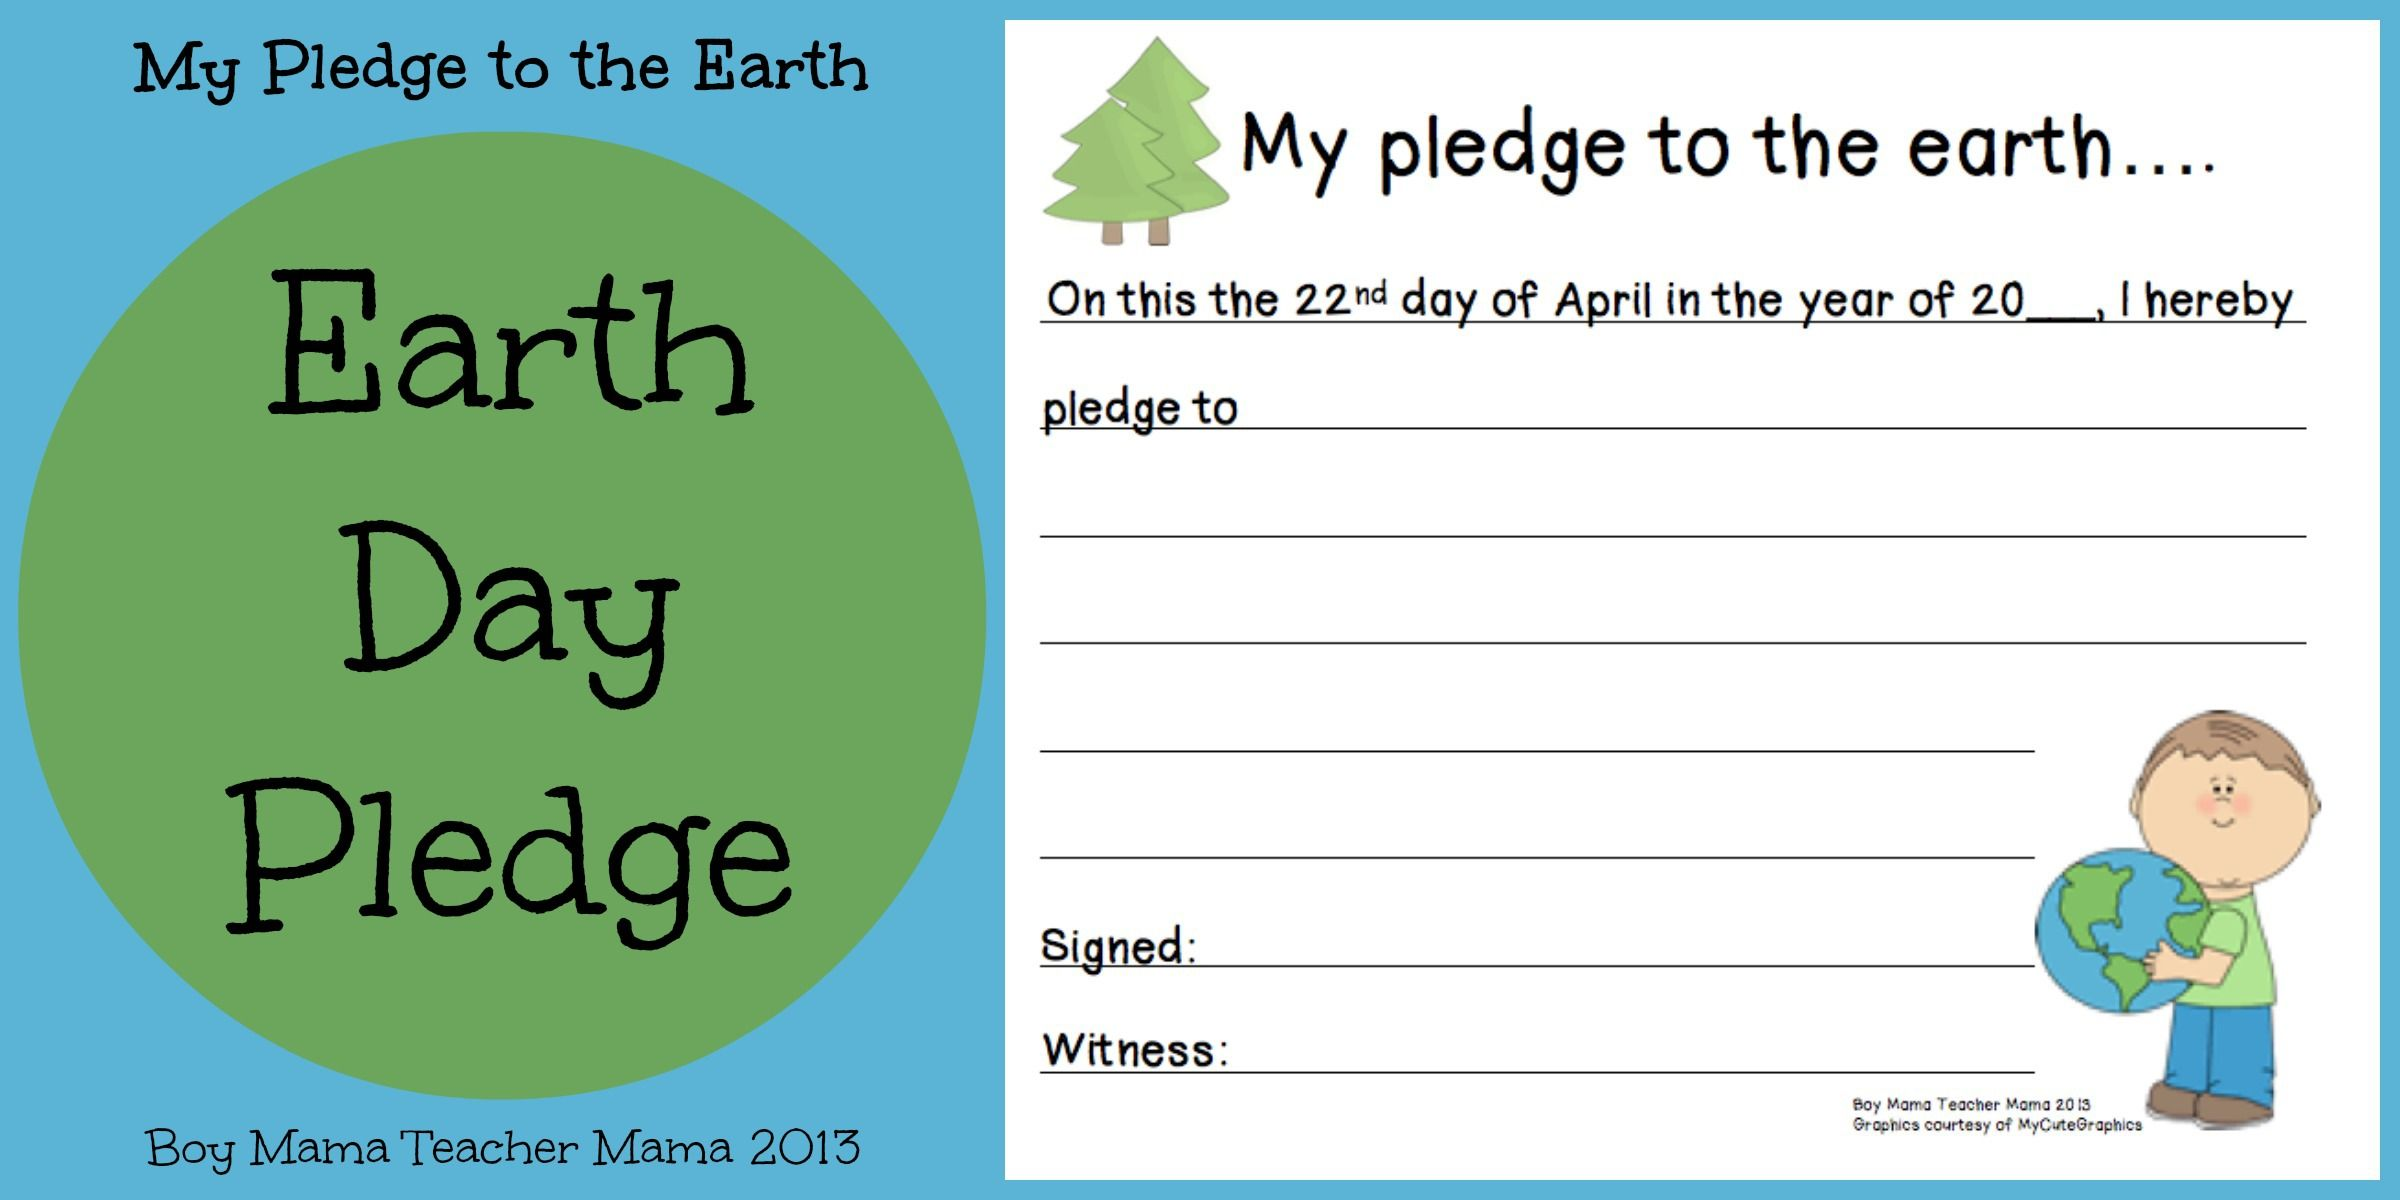 Boy Mama Teacher Mama  Earth Day Pledge  Free Worksheets For